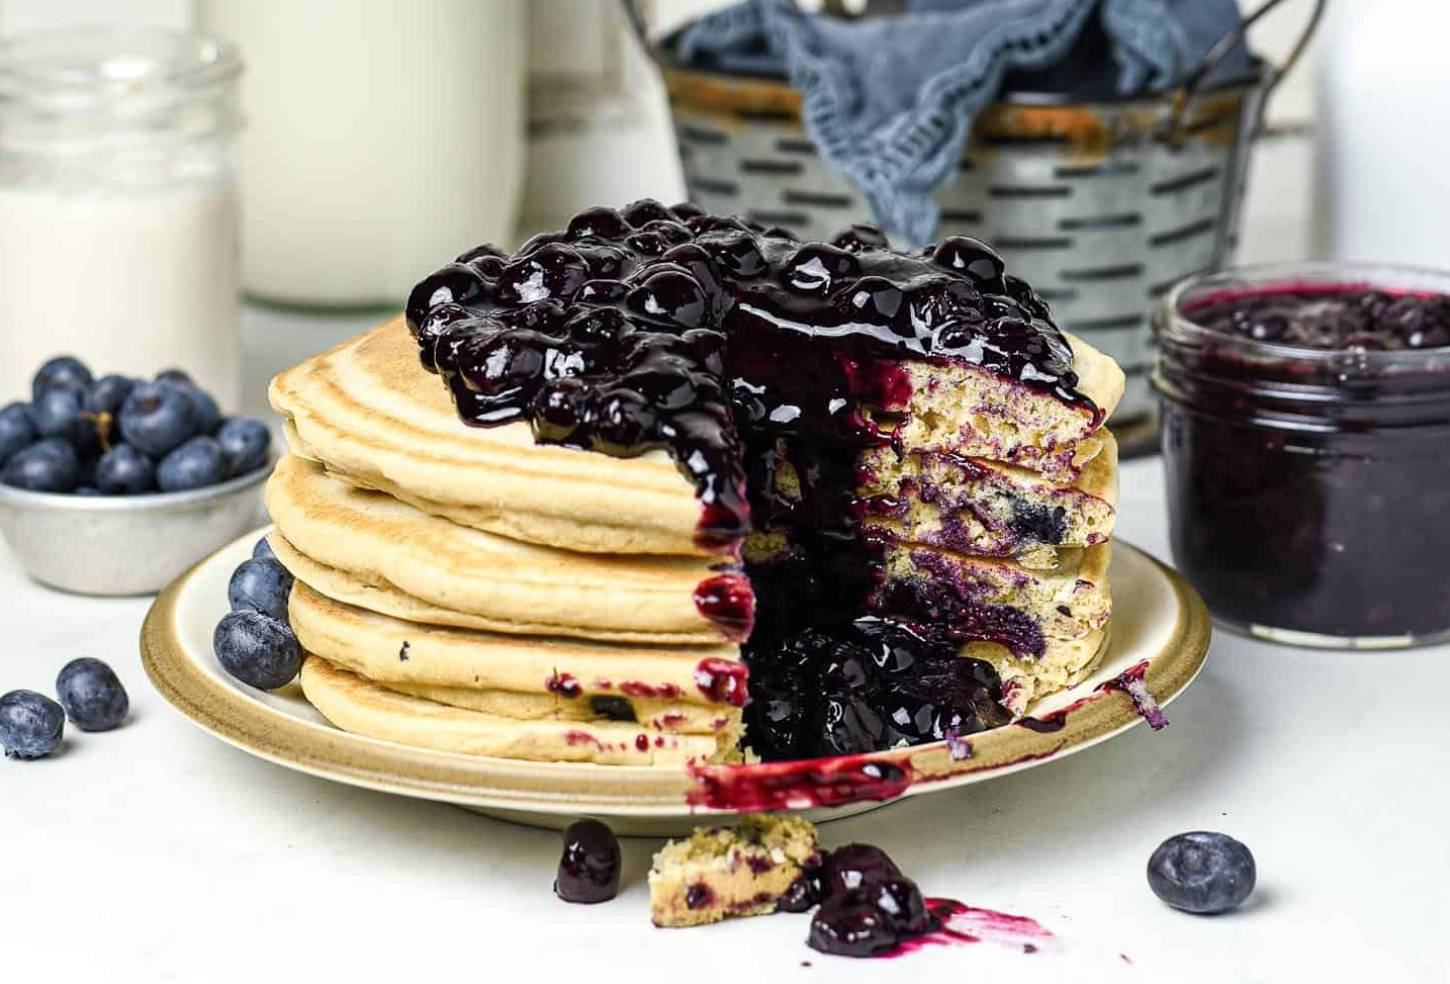 5 Healthy & Delicious Blueberry Stuffed Recipes That Are Perfect For Spring